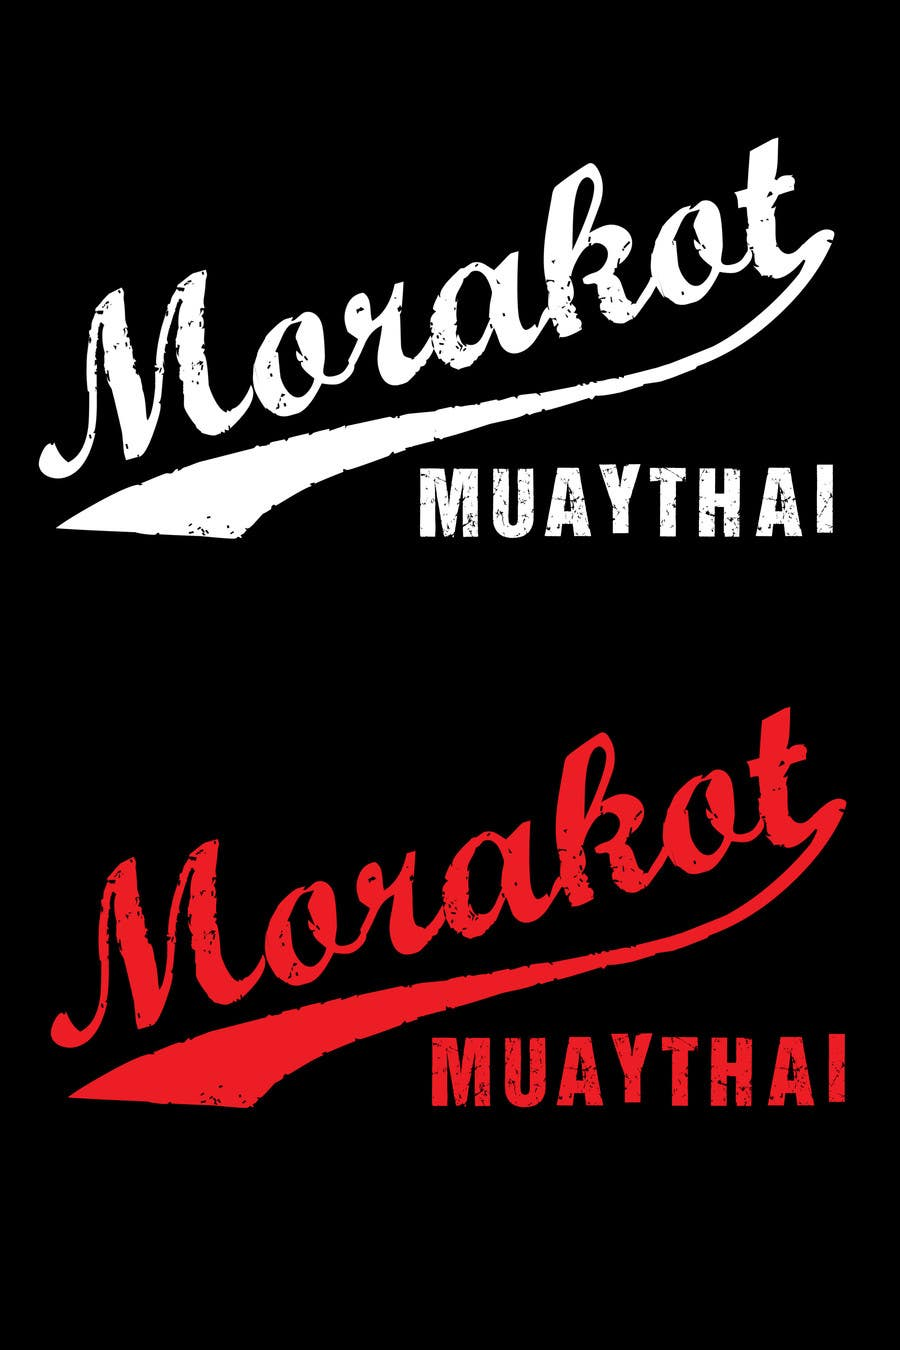 Design t shirt melbourne - Contest Entry 52 For Muay Thai T Shirt Design For A Gym In Melbourne